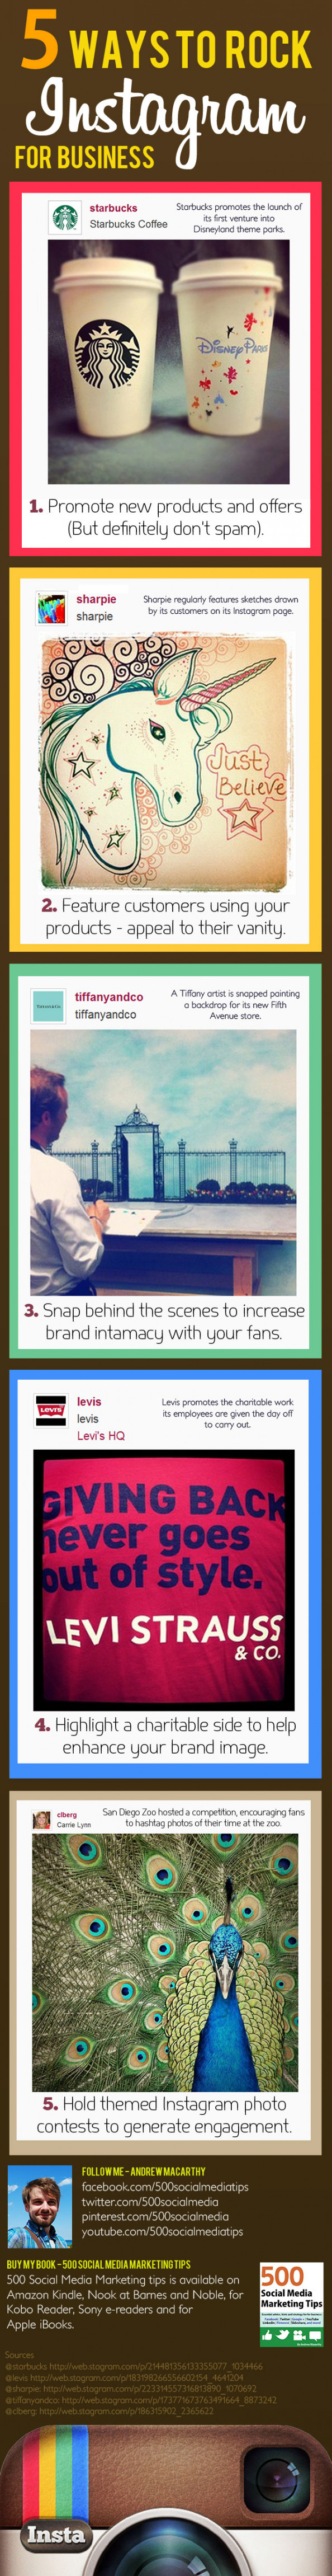 5 Ways to Rock Instagram For Business Infographic